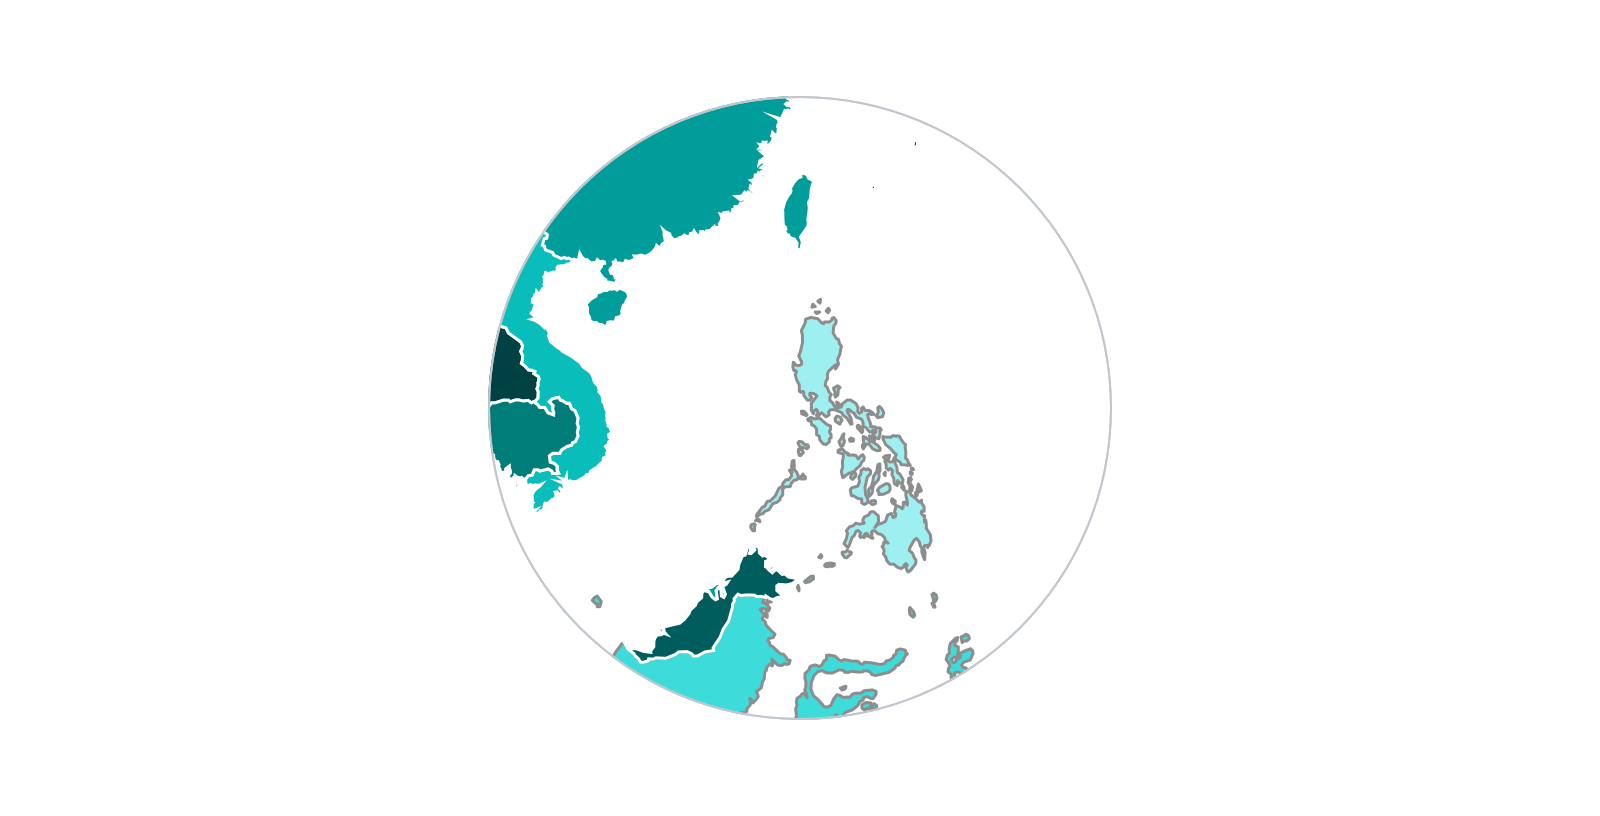 Close up of a light theme map of Southeast Asia region where Philippines islands are outlined in gray-50.